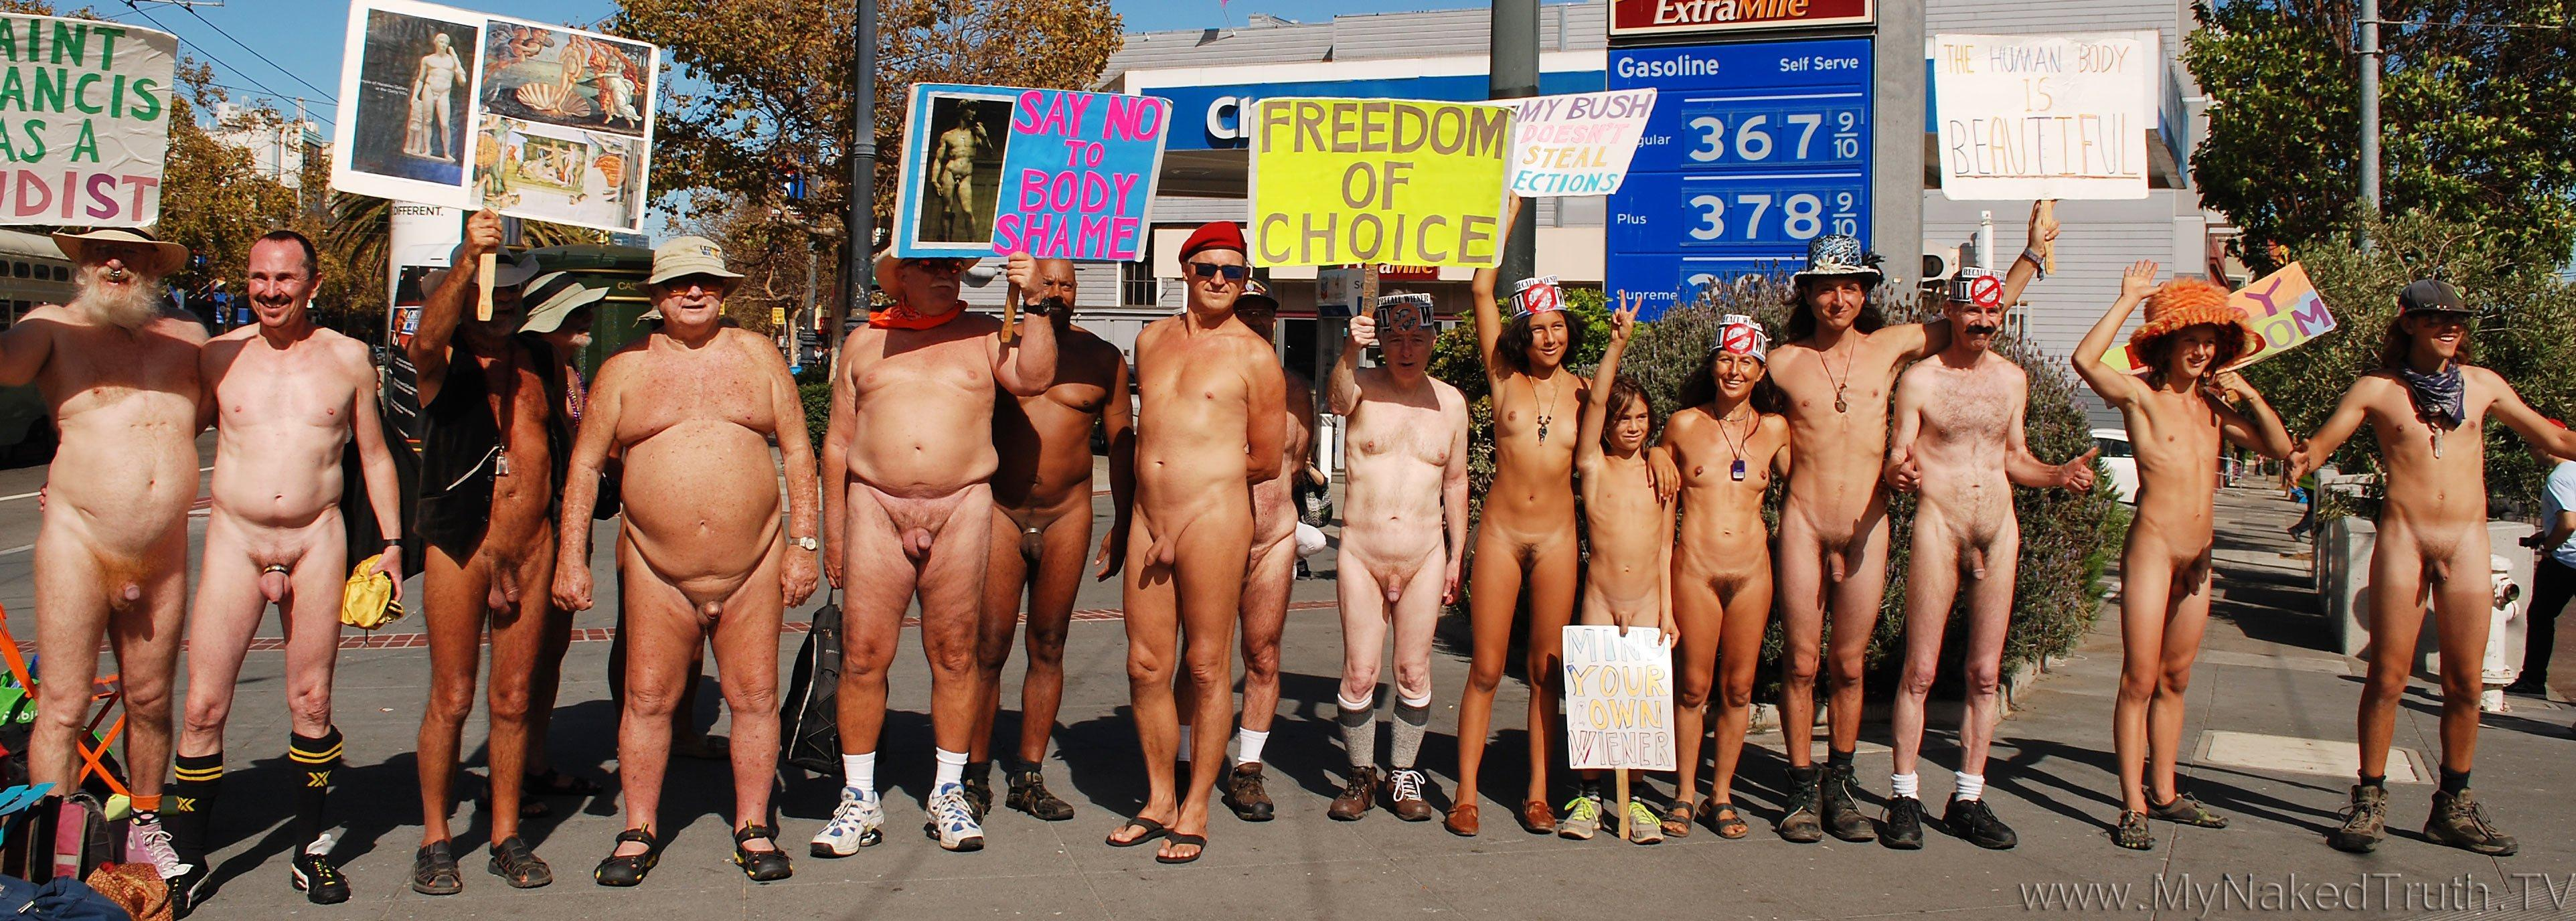 Nudist christian church